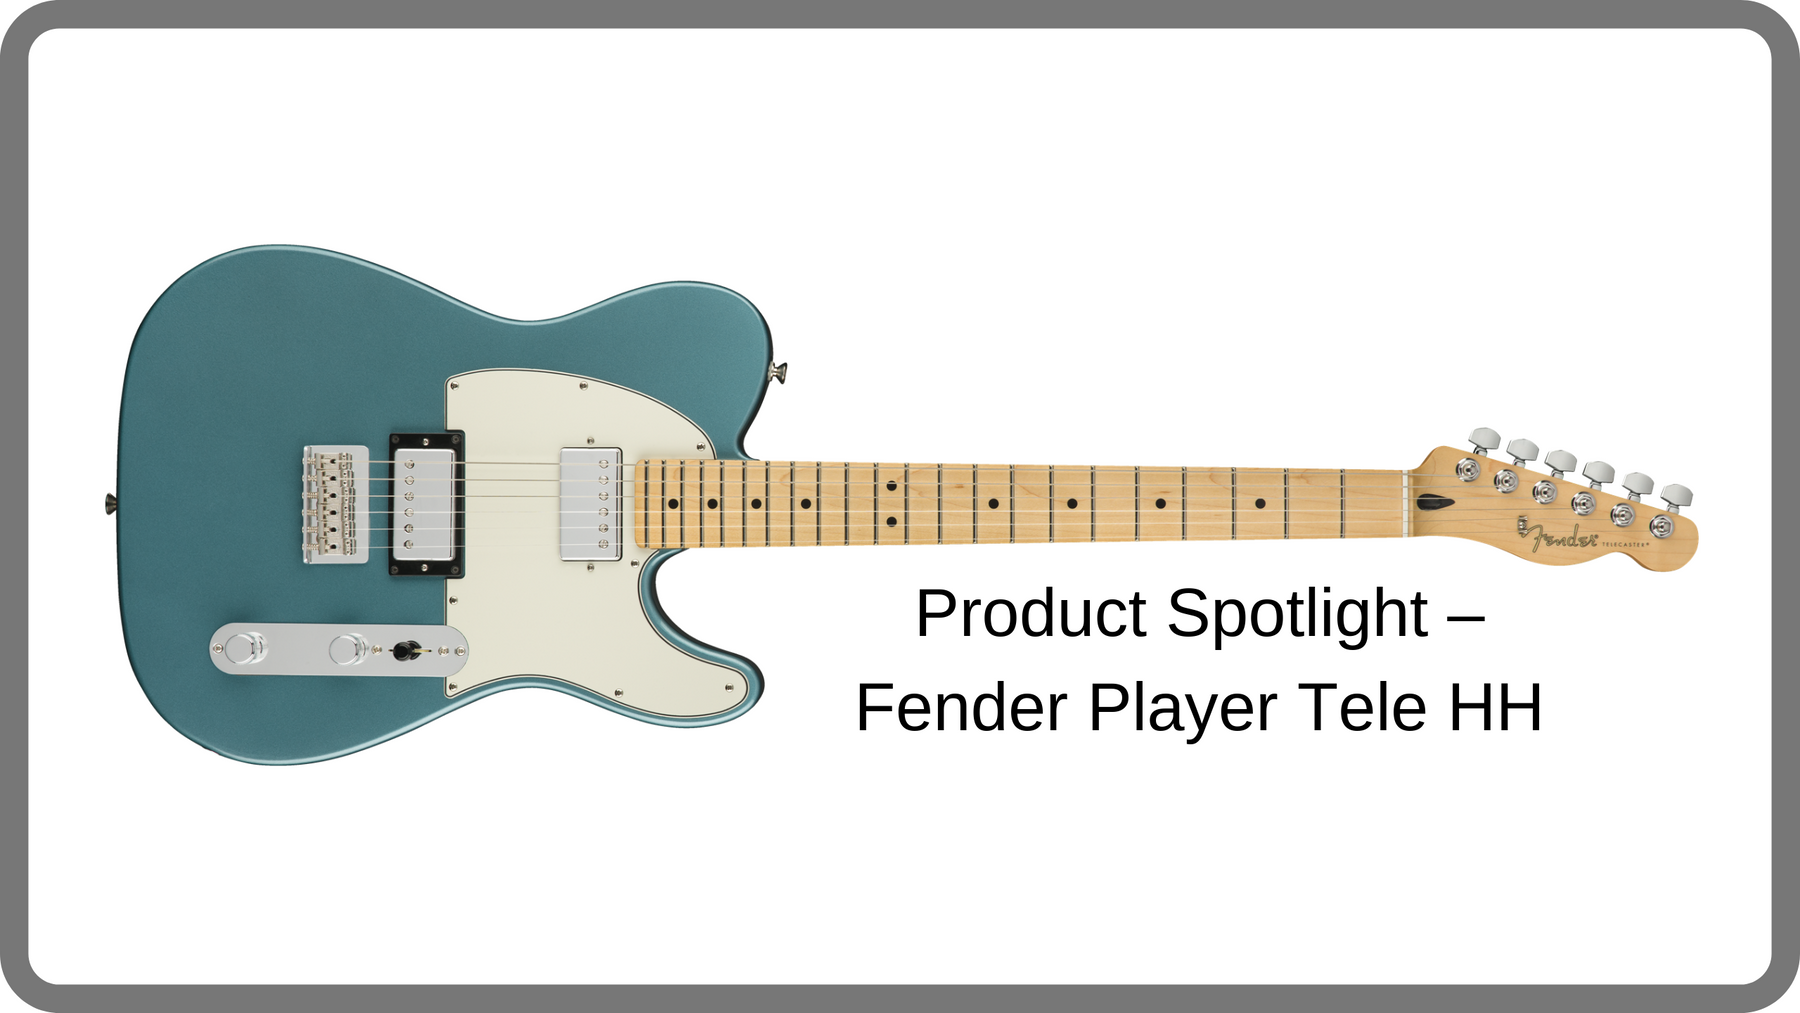 Product Spotlight – Fender Player Tele HH